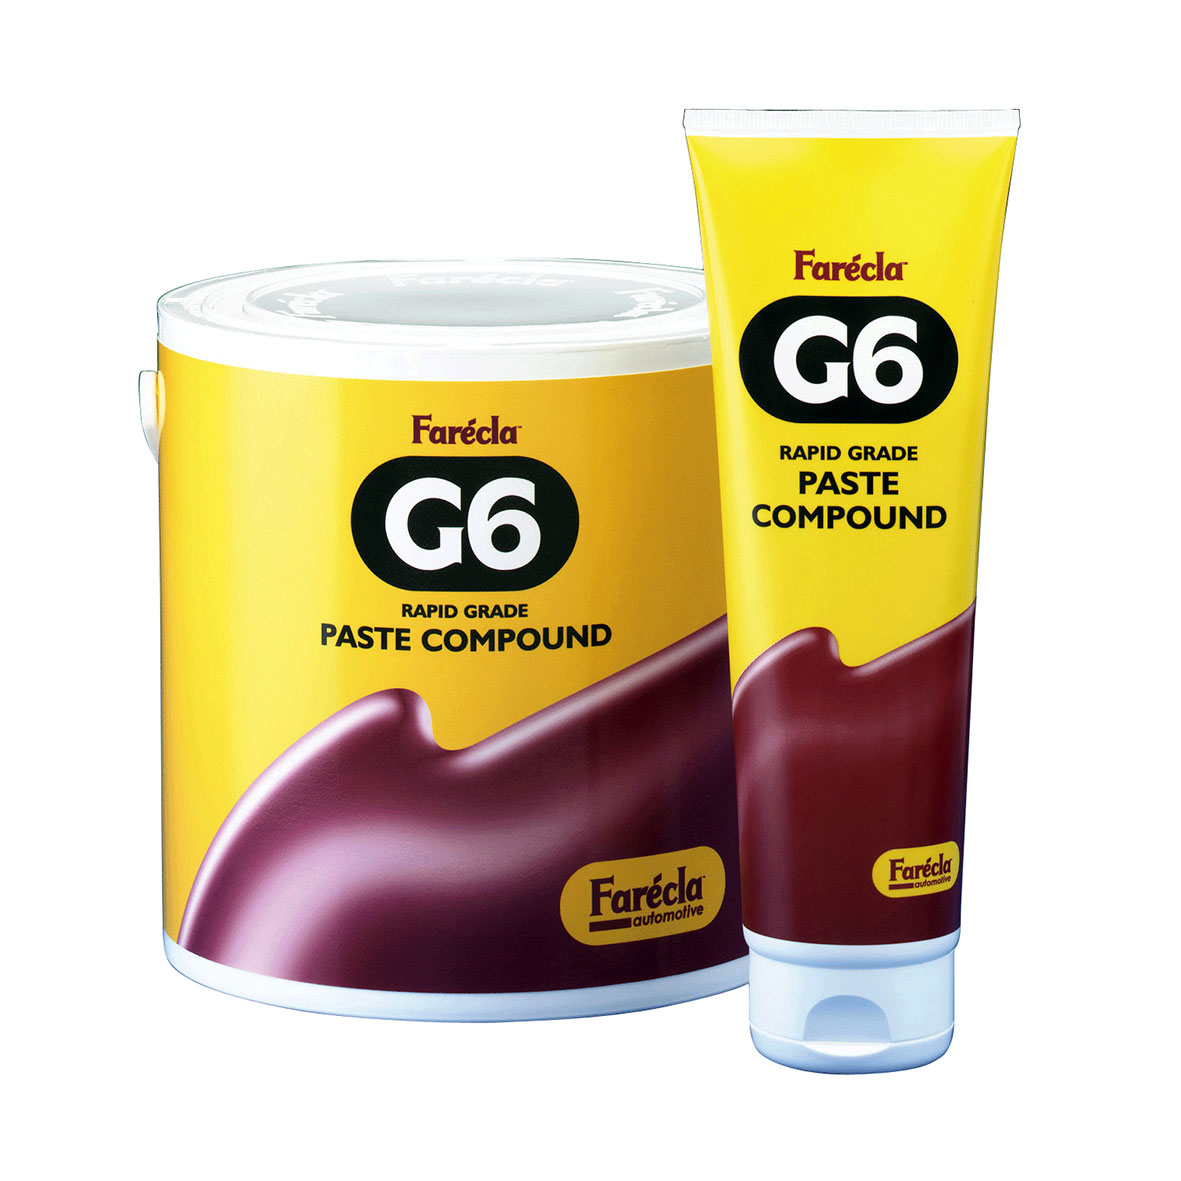 G6 Rapid Grade Paste Compound